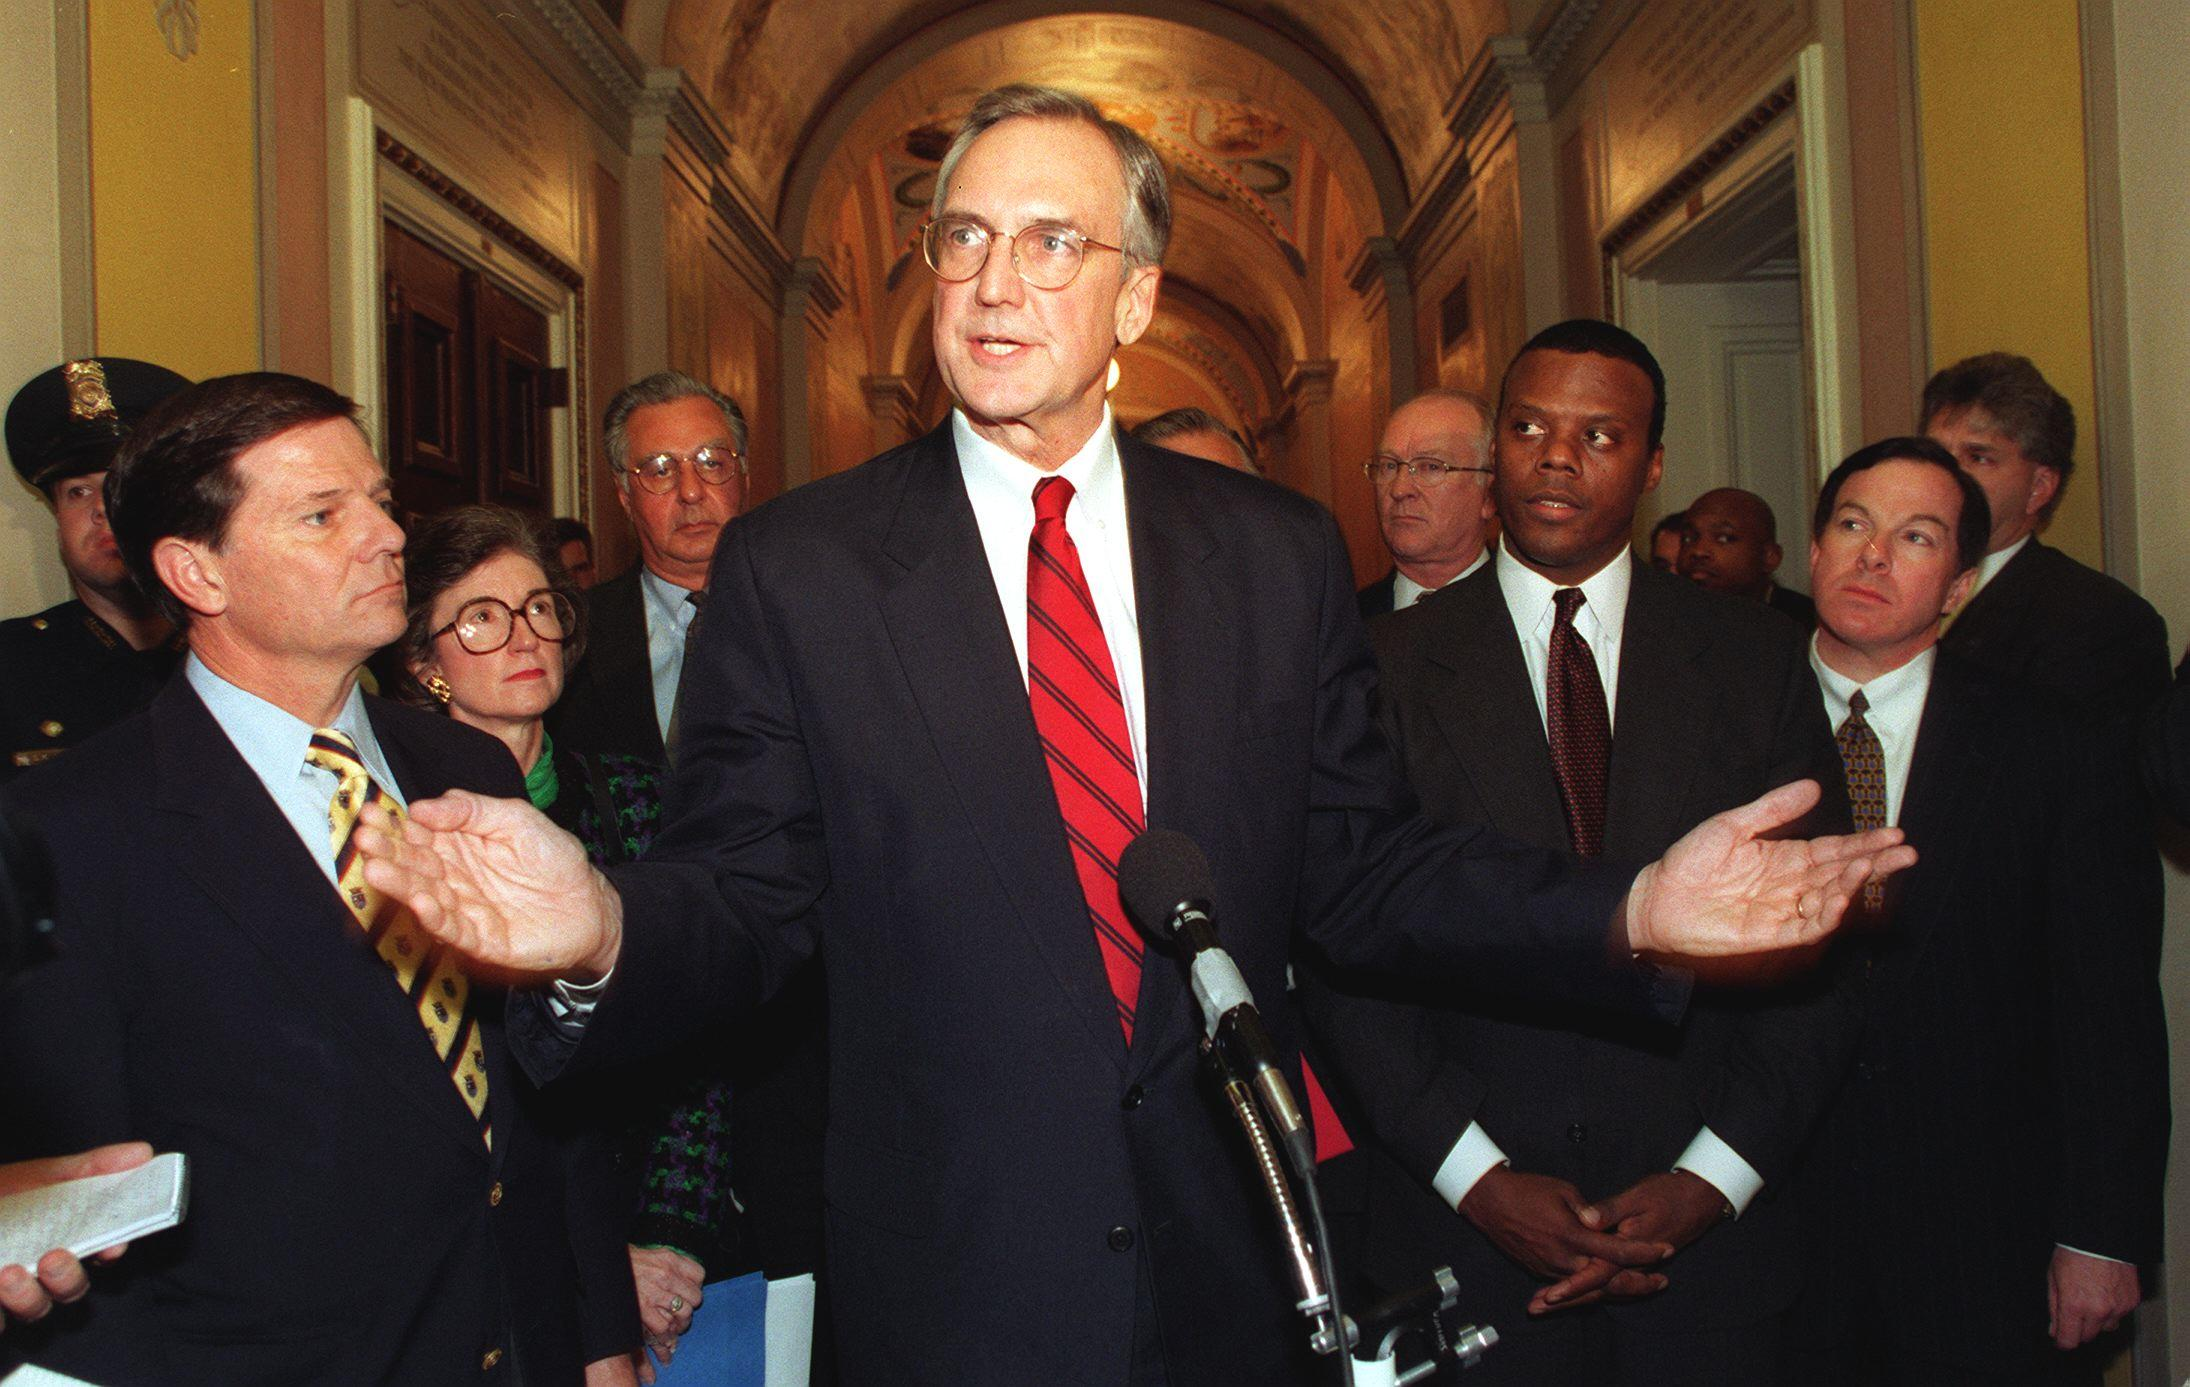 Robert Livingston speaks to the media ahead of the hearings on the impeachment of then-President Bill Clinton.